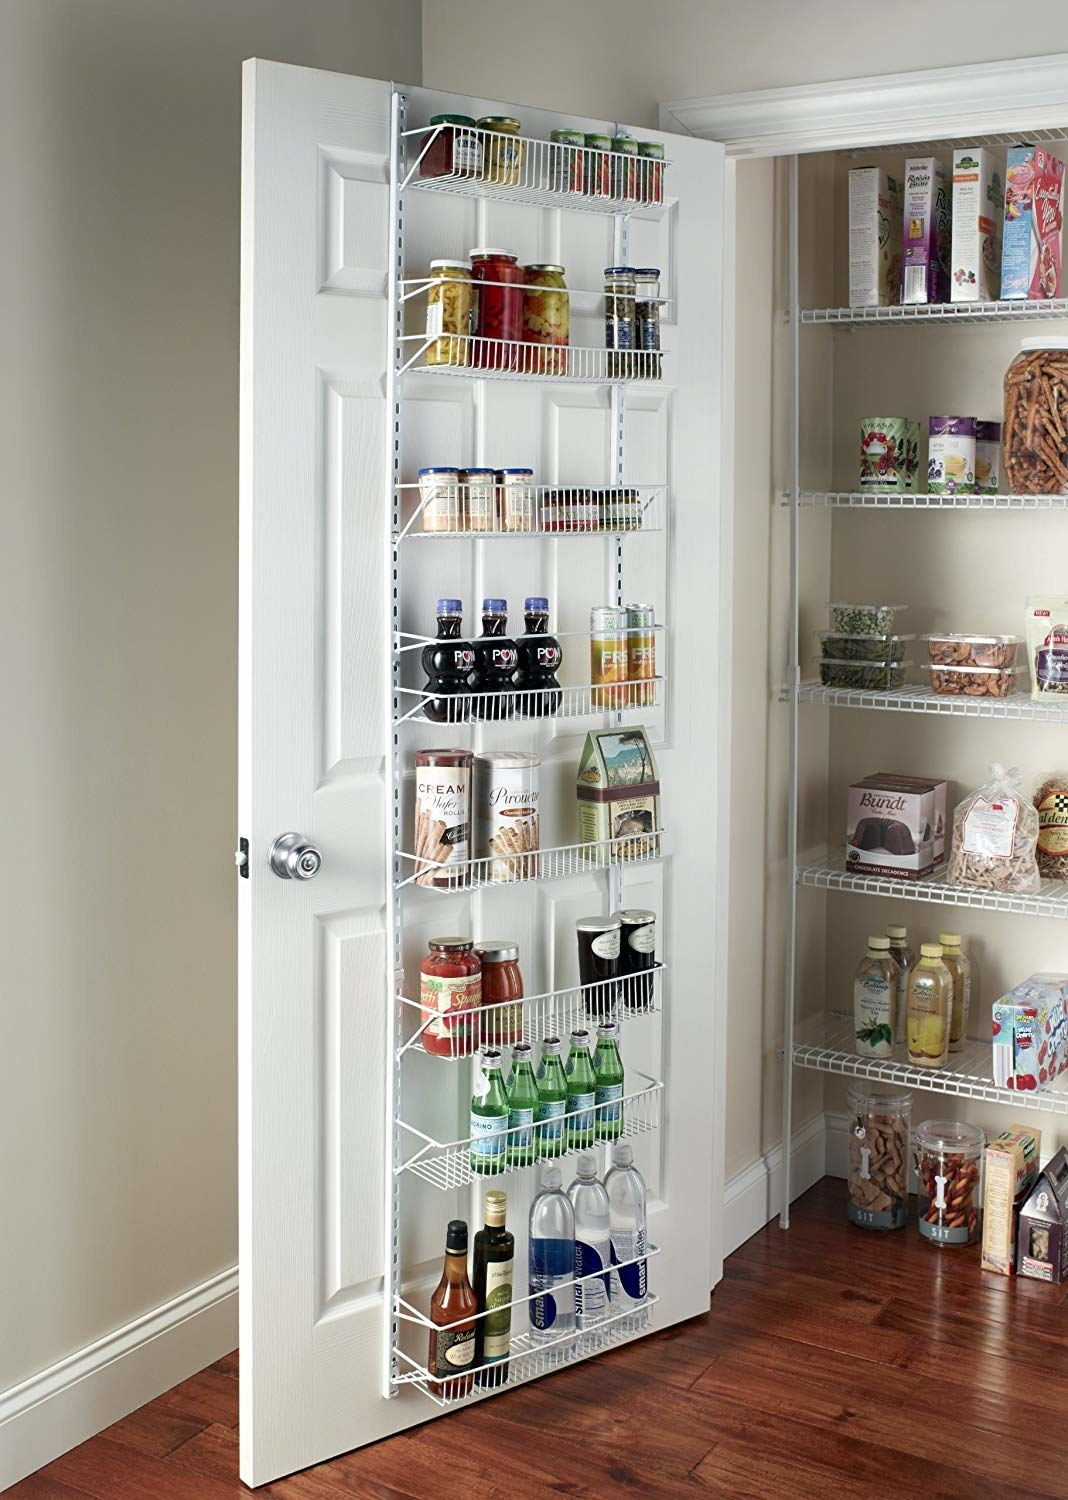 The rack mounted to a pantry door